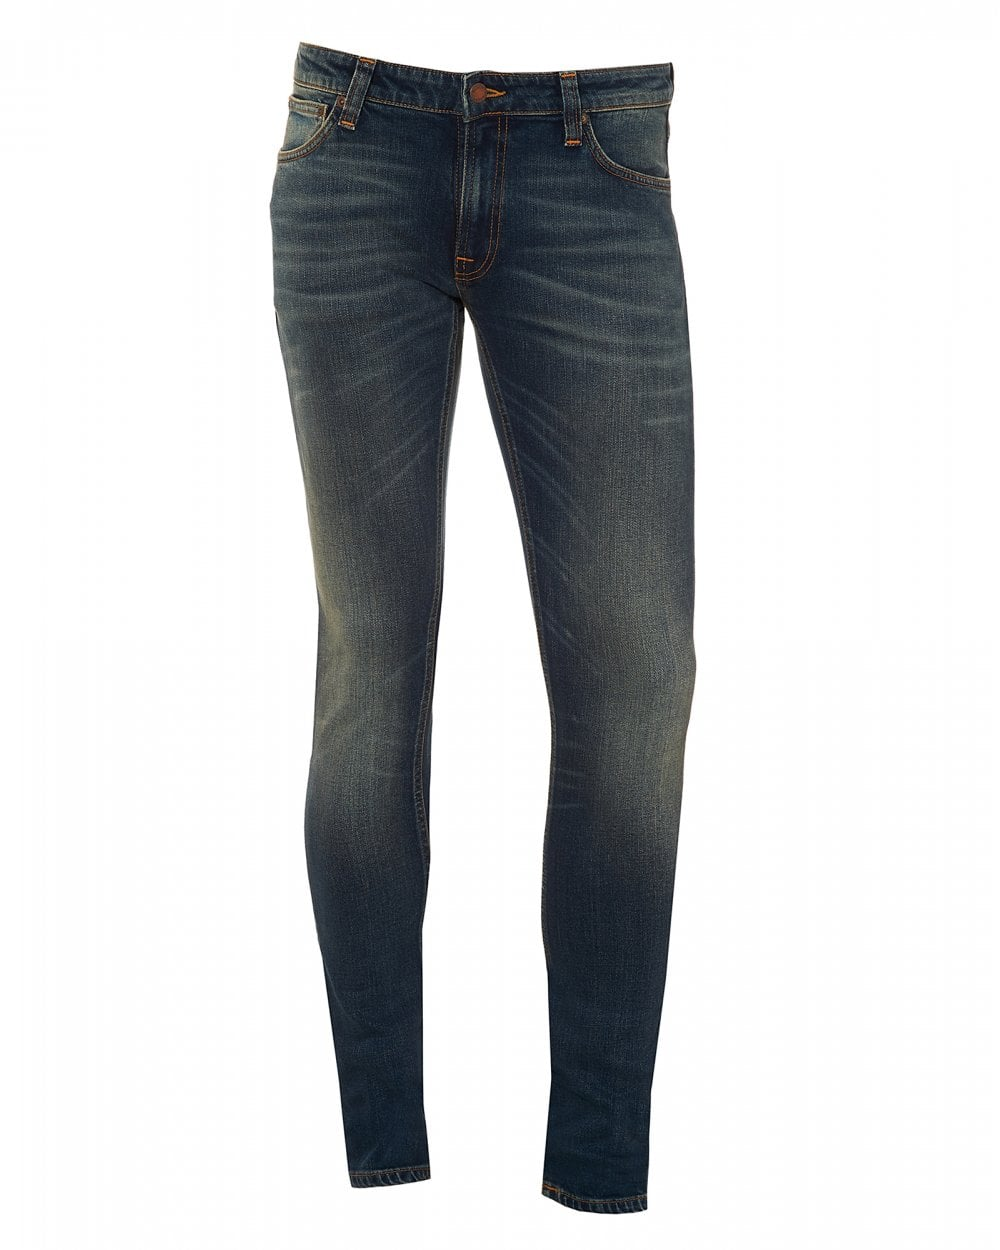 80f4618a1deb Nudie Jeans Mens Skinny Lin Cold Blues Jeans